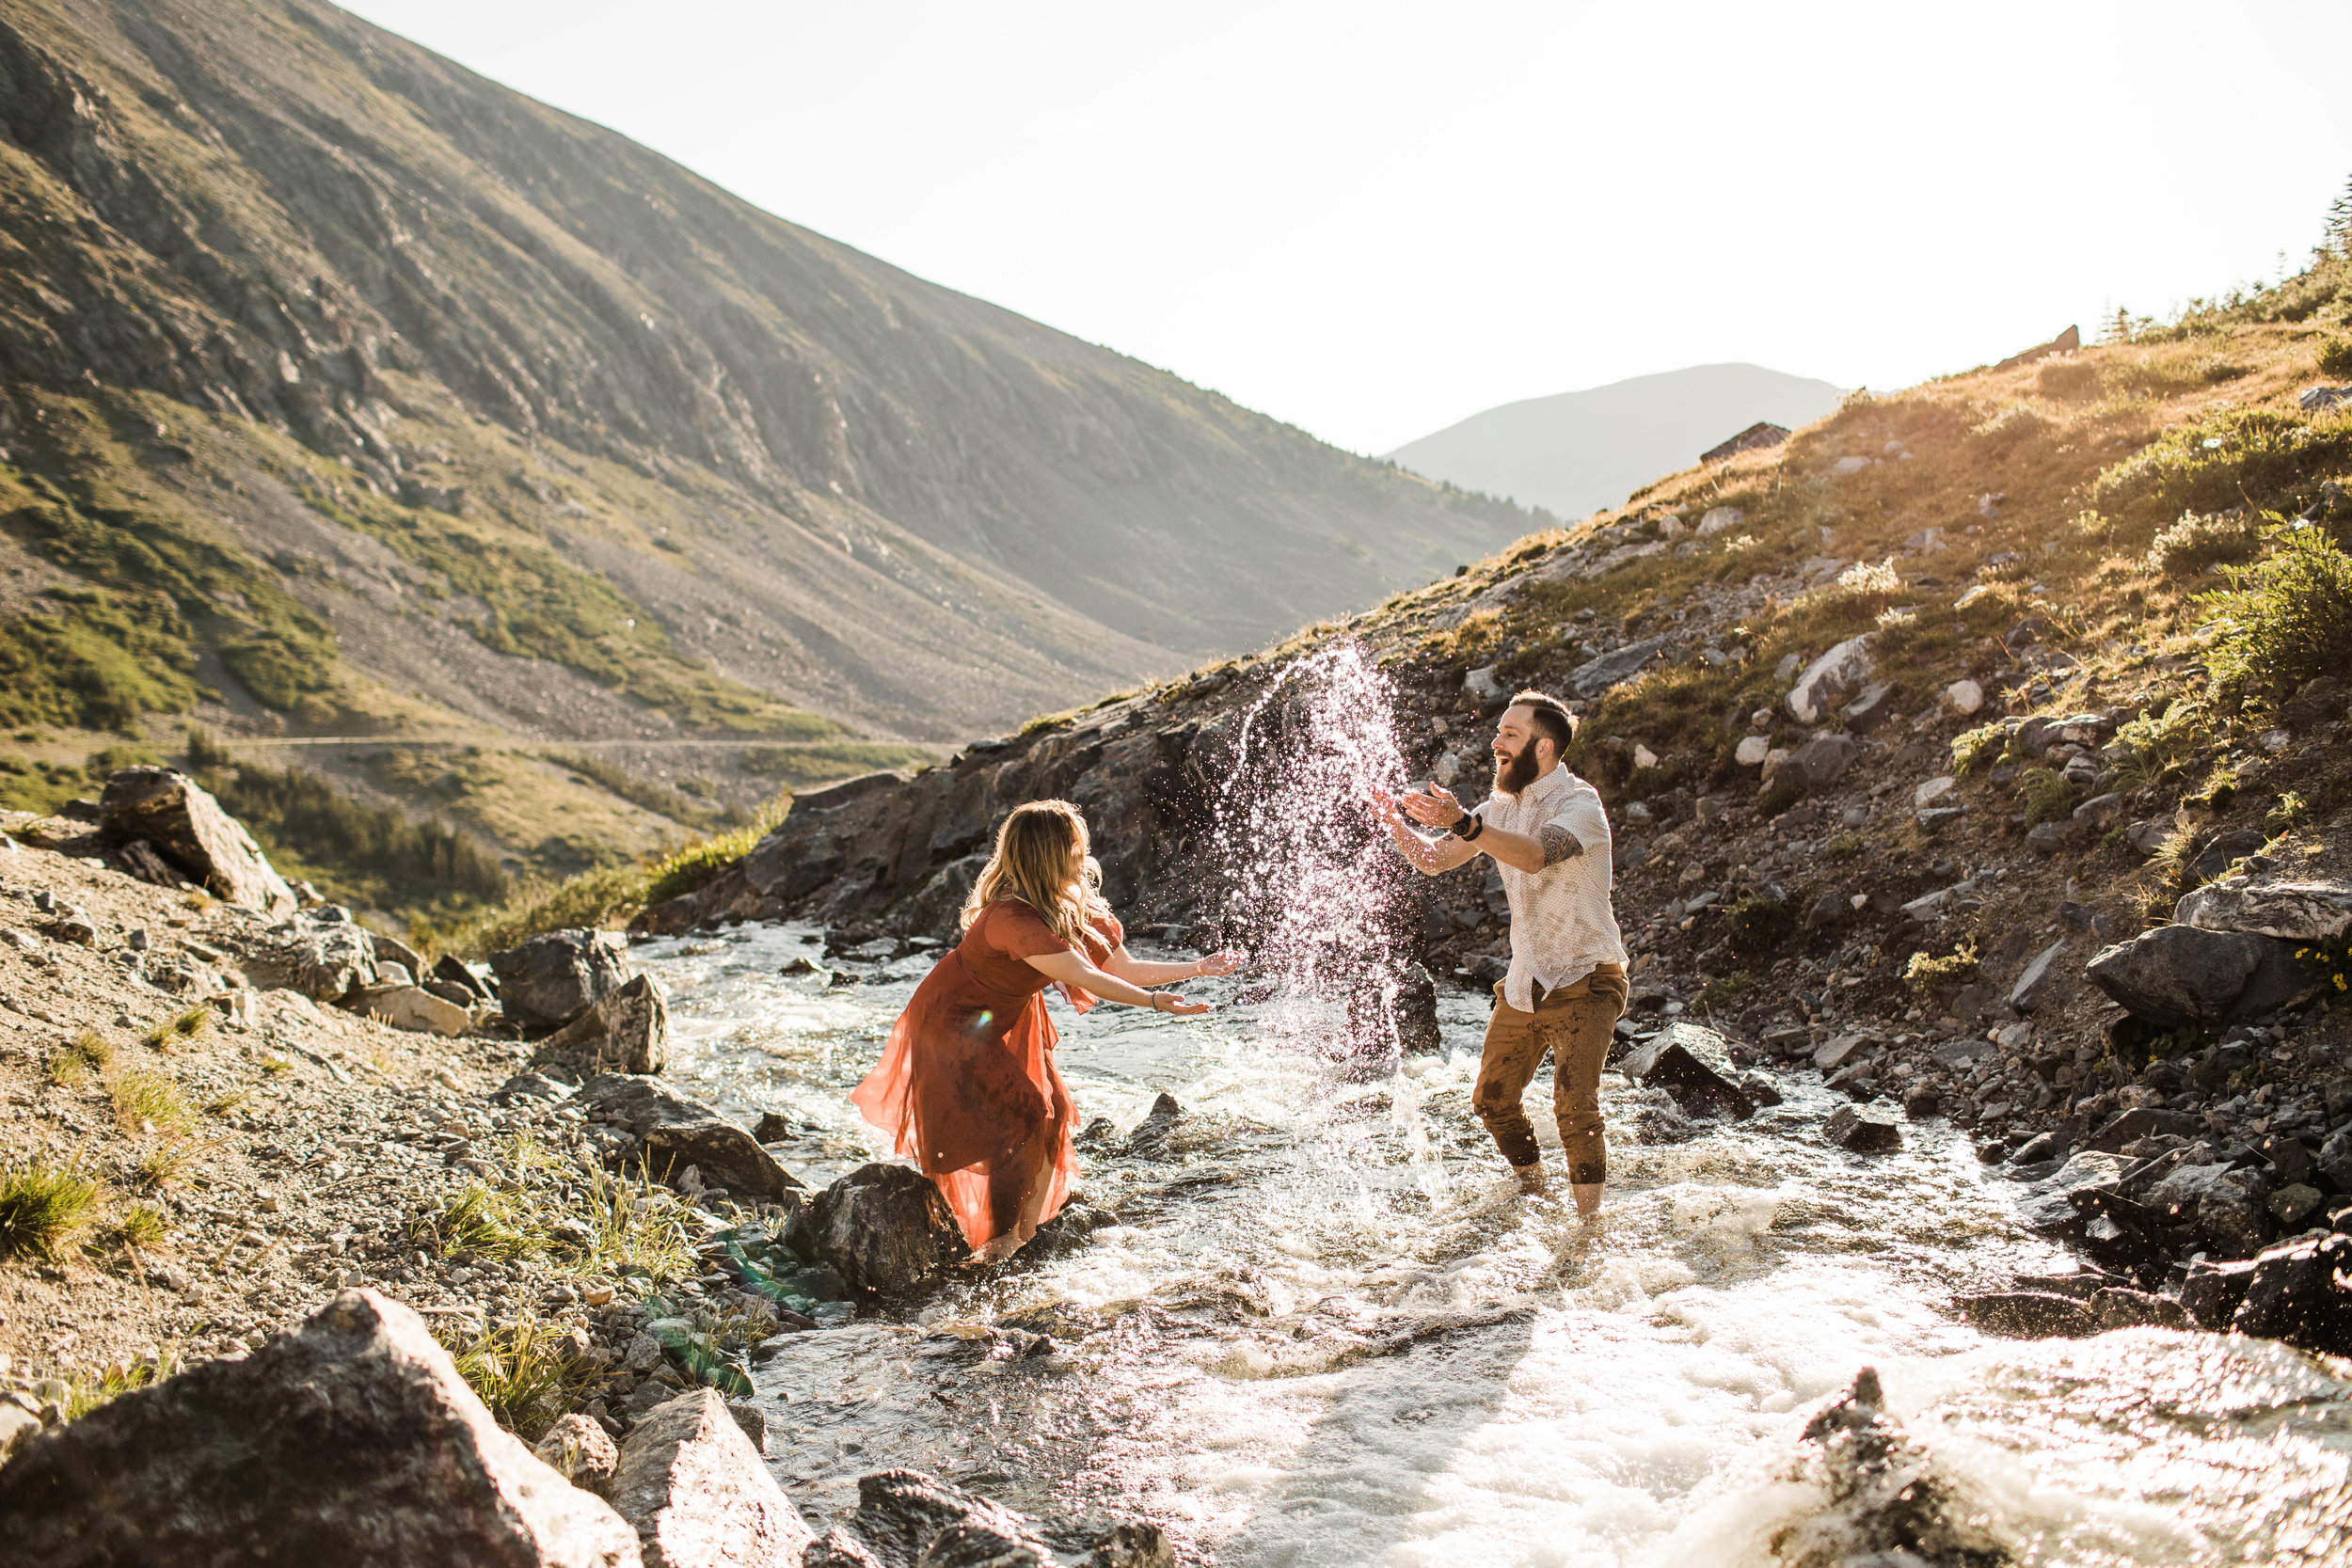 eloping couple splashing around in a creek during their adventurous engagement photos in the mountains of Colorado | Breckenridge wedding and elopement photographers